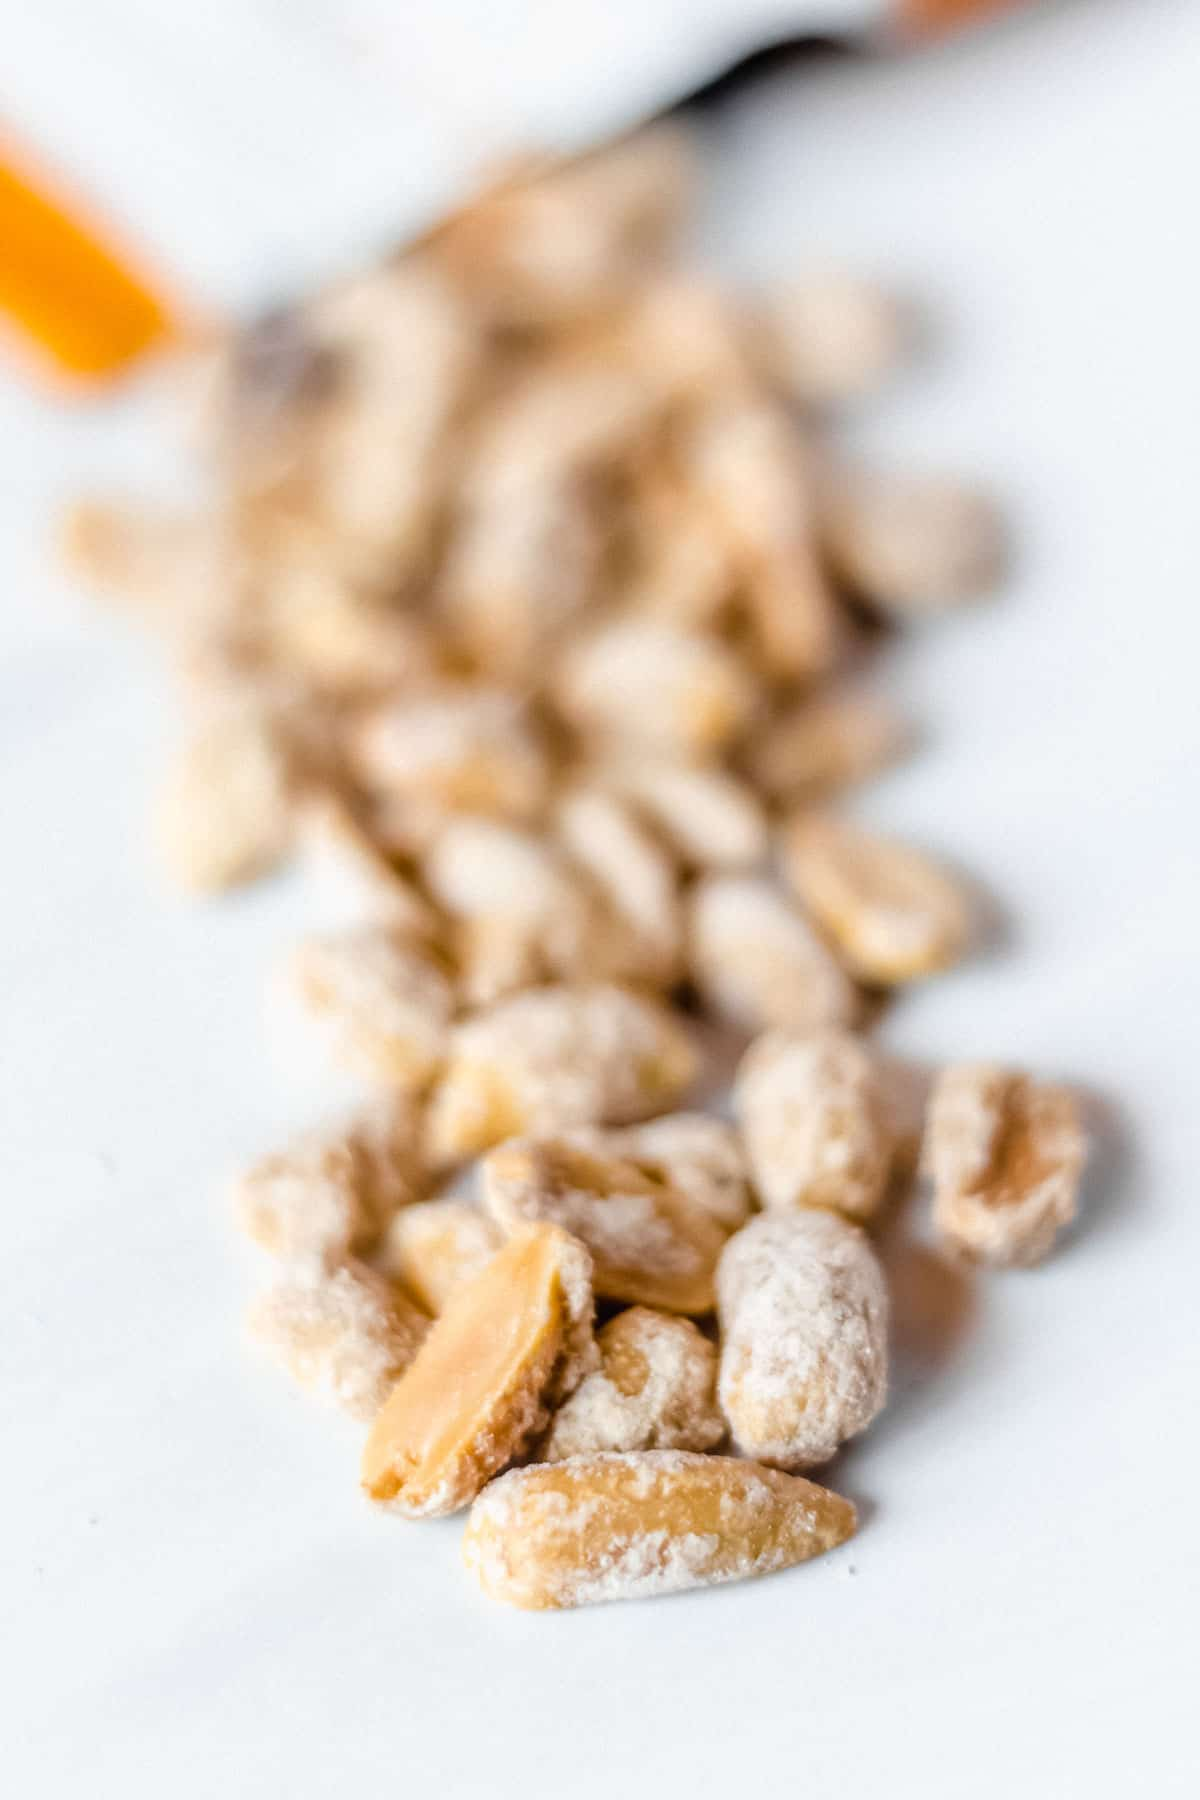 Keto Farms Butter Toffee Peanuts on a white background